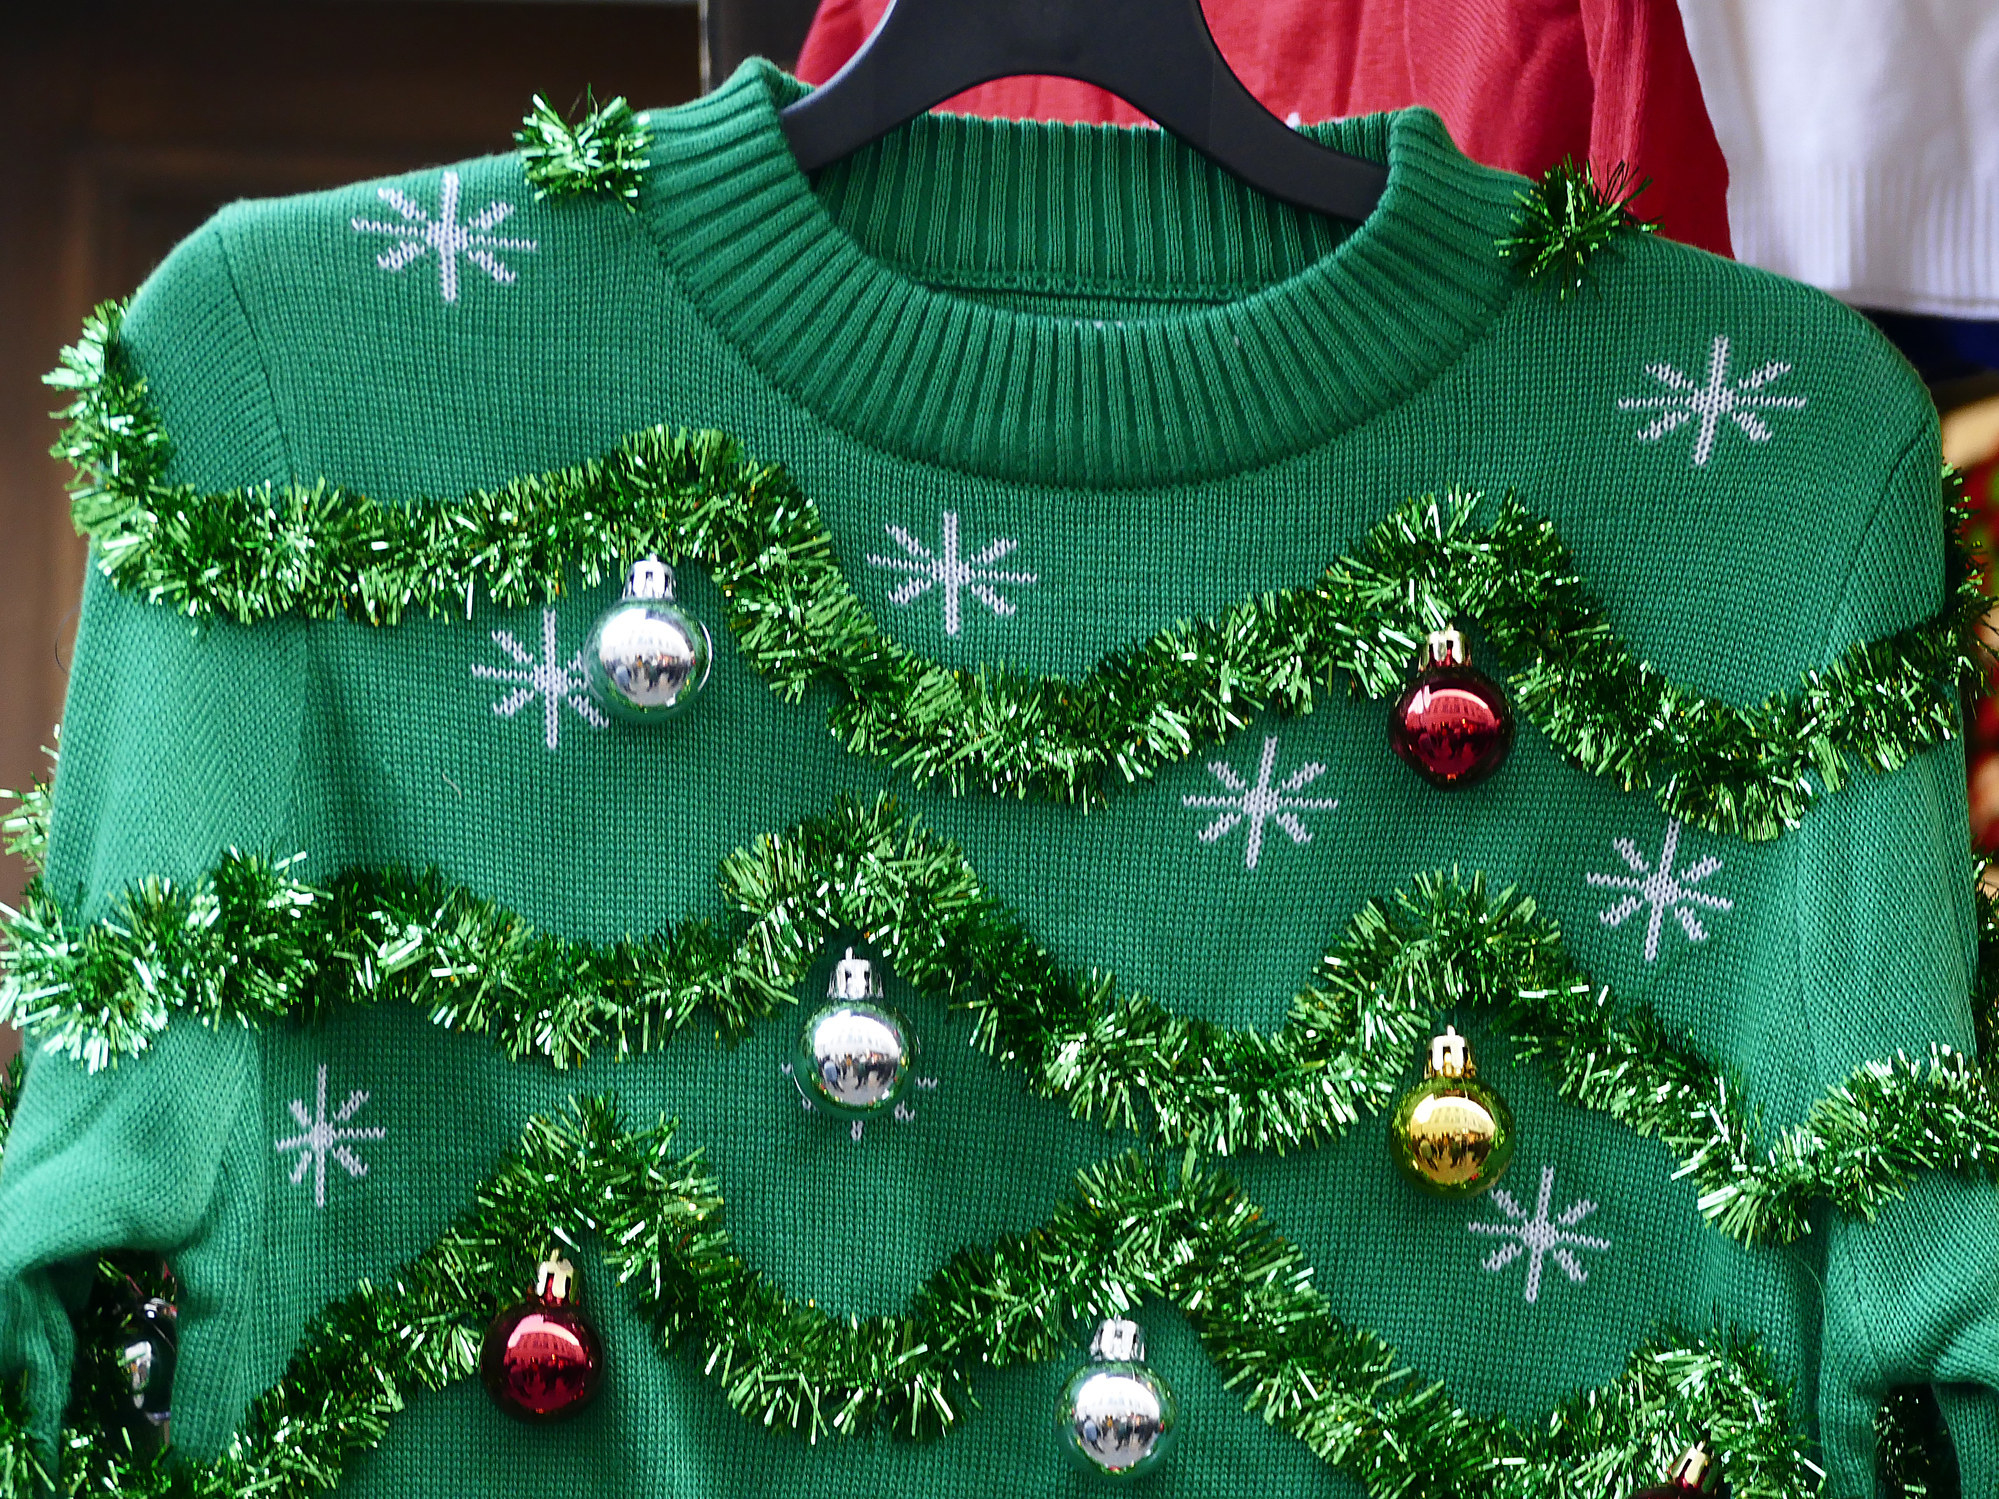 Green ugly holiday sweater covered in small ornaments.